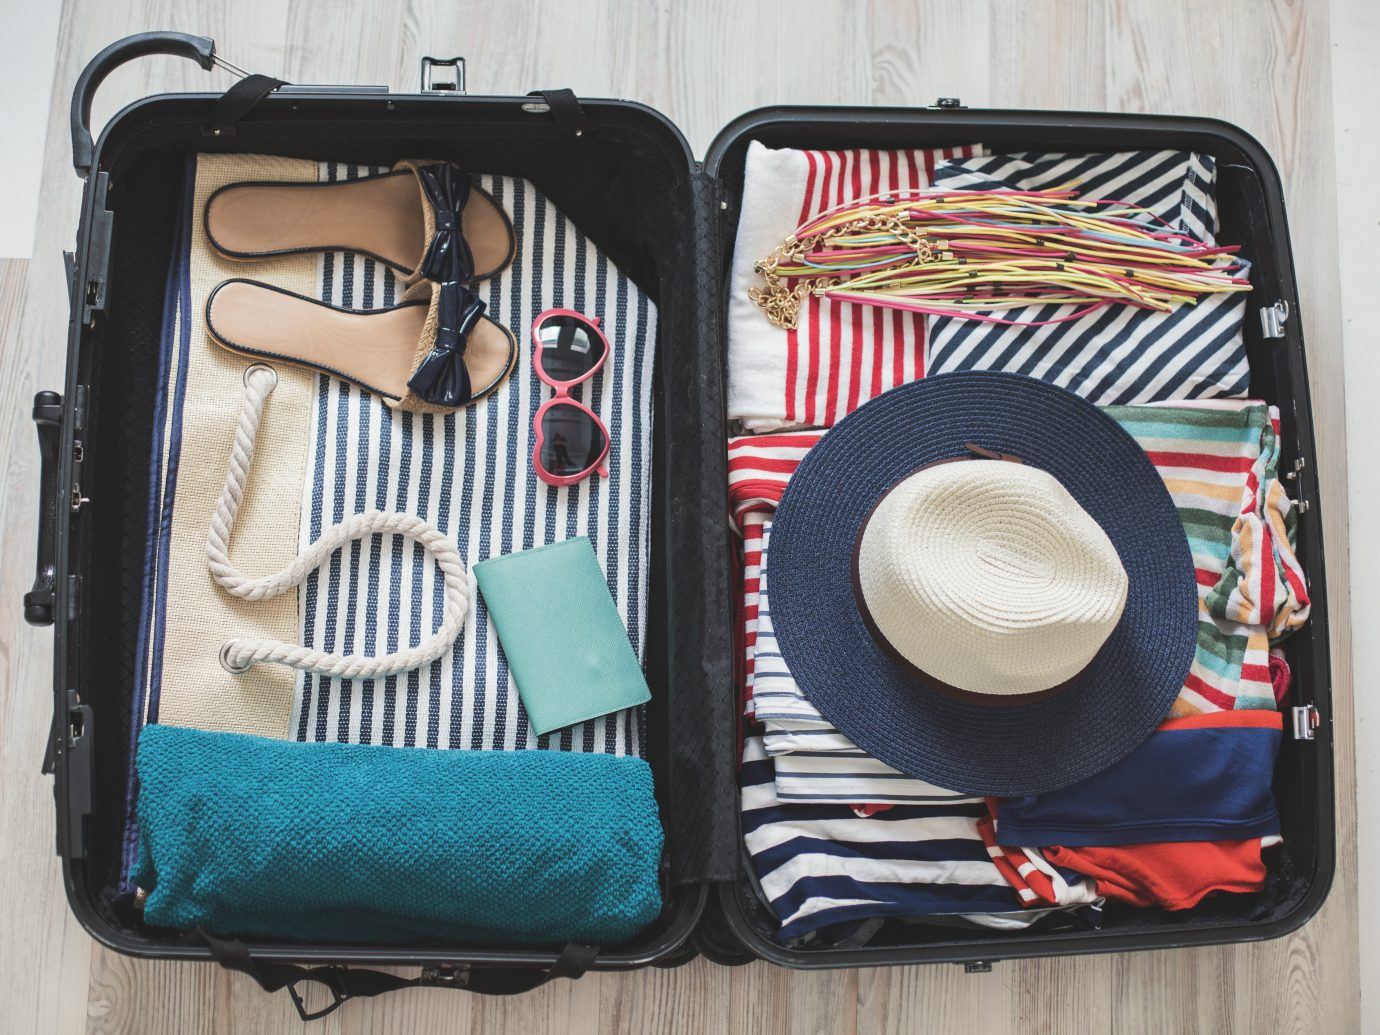 High angle view of summer clothes, slippers, sun hat, sun glasses, beach towel, and other accessories arranged in a suitcase.